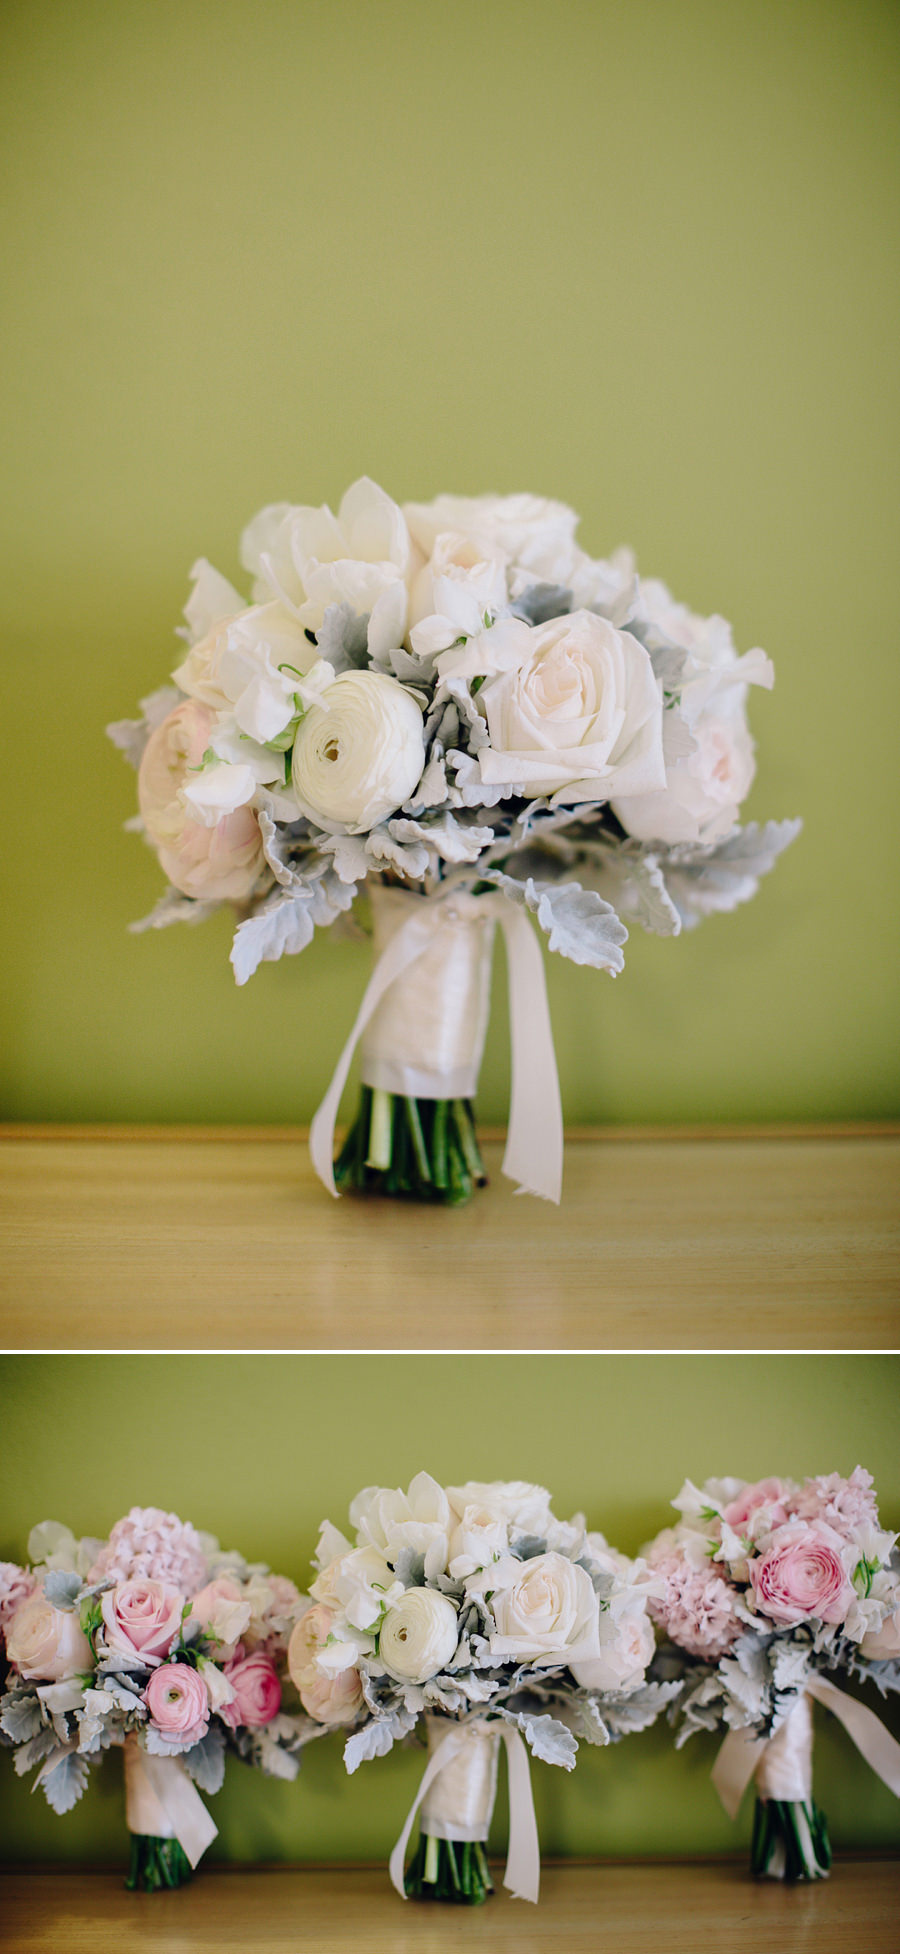 North Sydney Wedding Photography: Bouquets